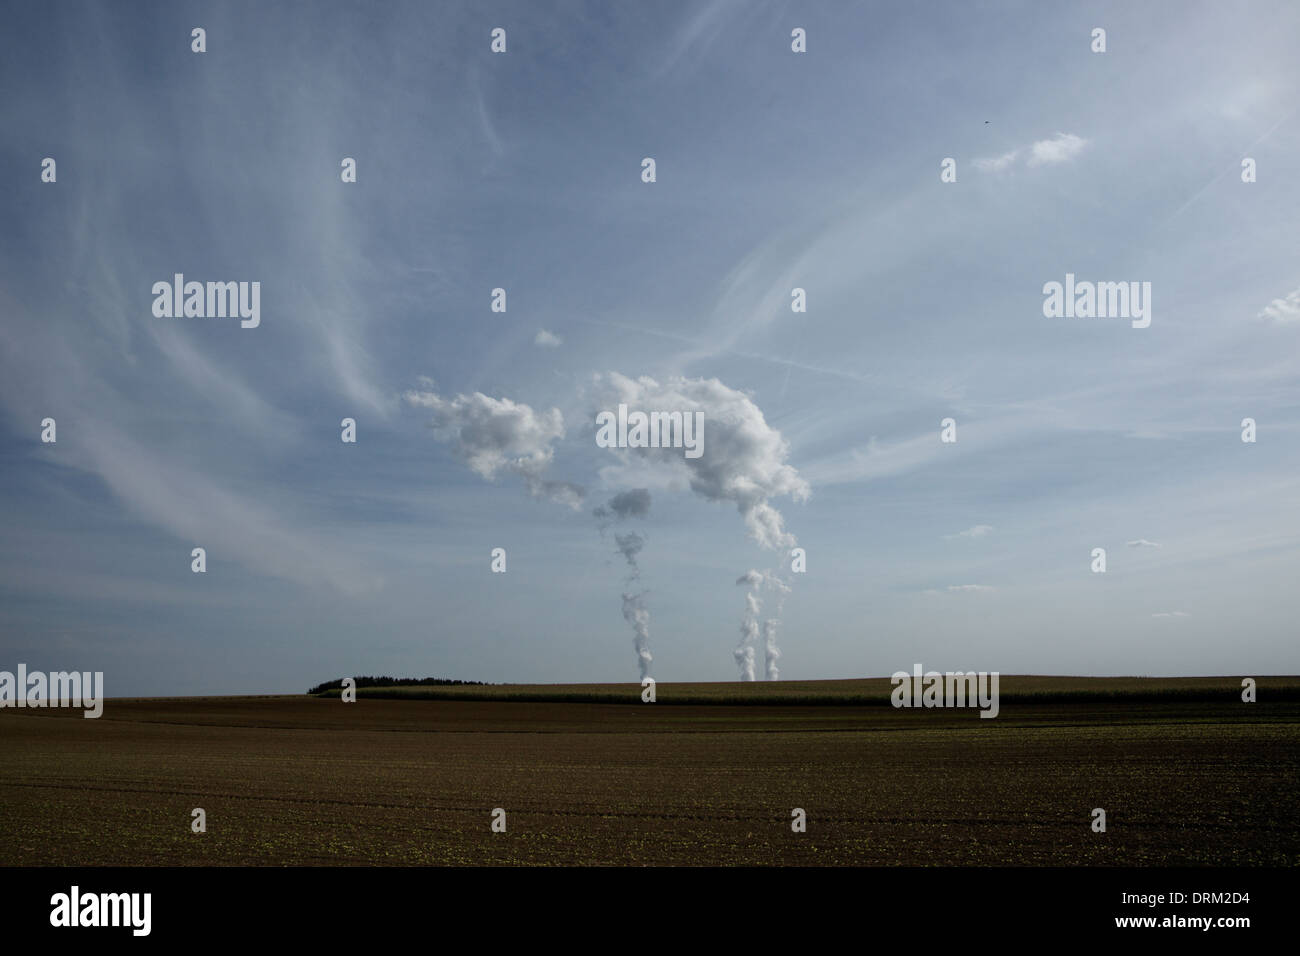 Cattenom Nuclear power station steam and landscape - Stock Image